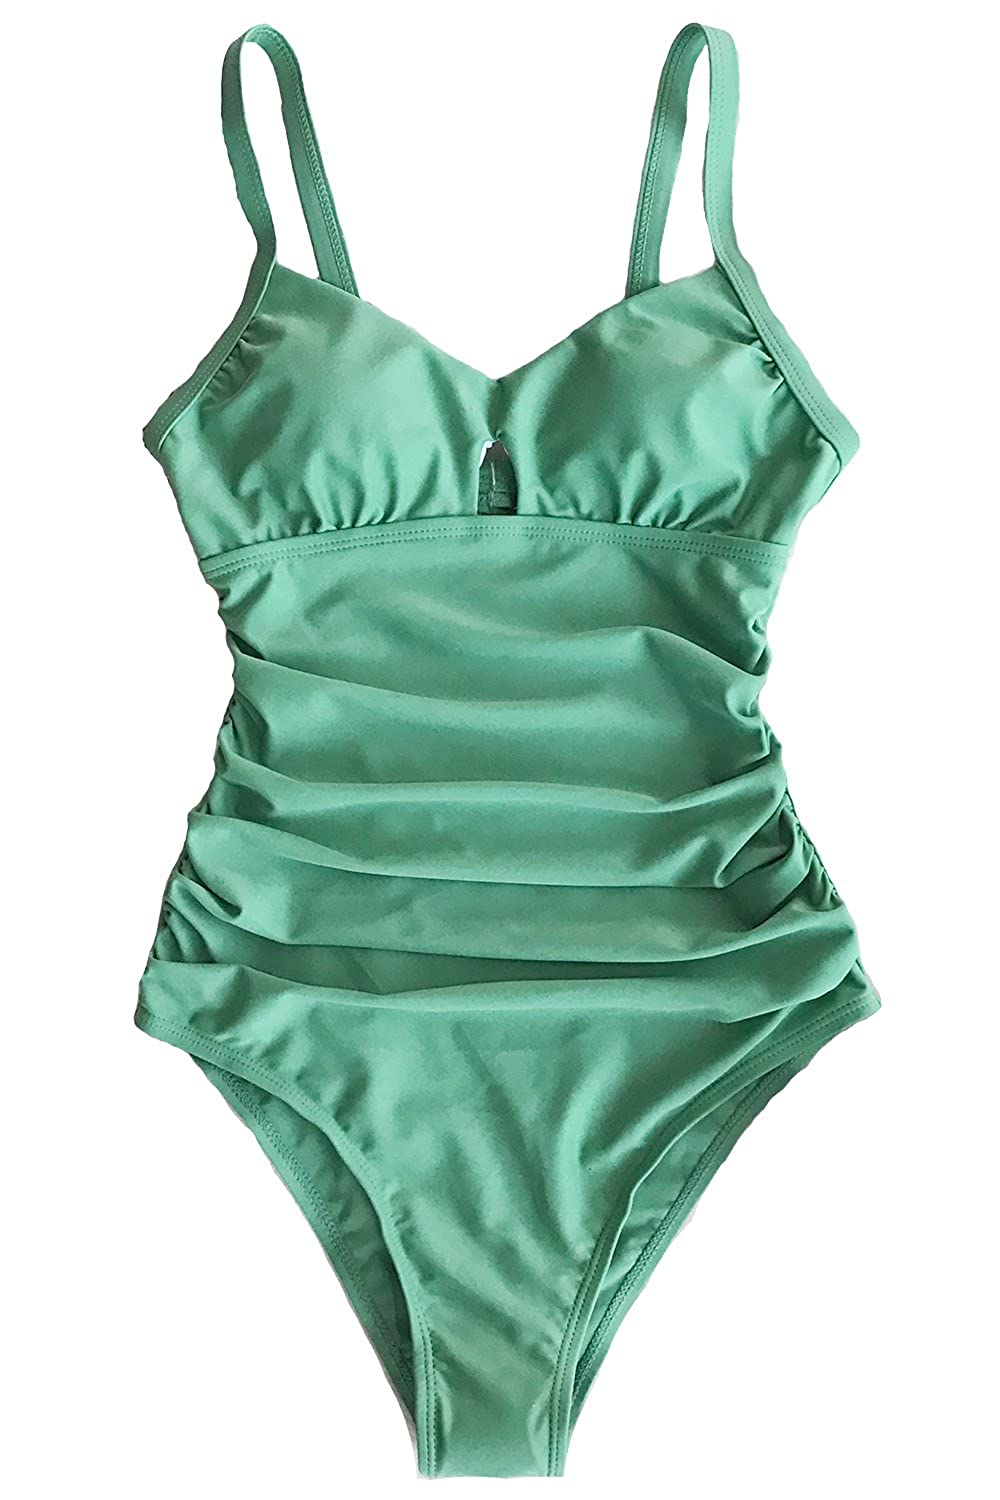 8ffce2355140c CUPSHE Women's Green Grass Solid One-Piece Swimsuit Backless Beach Swimear  at Amazon Women's Clothing store: